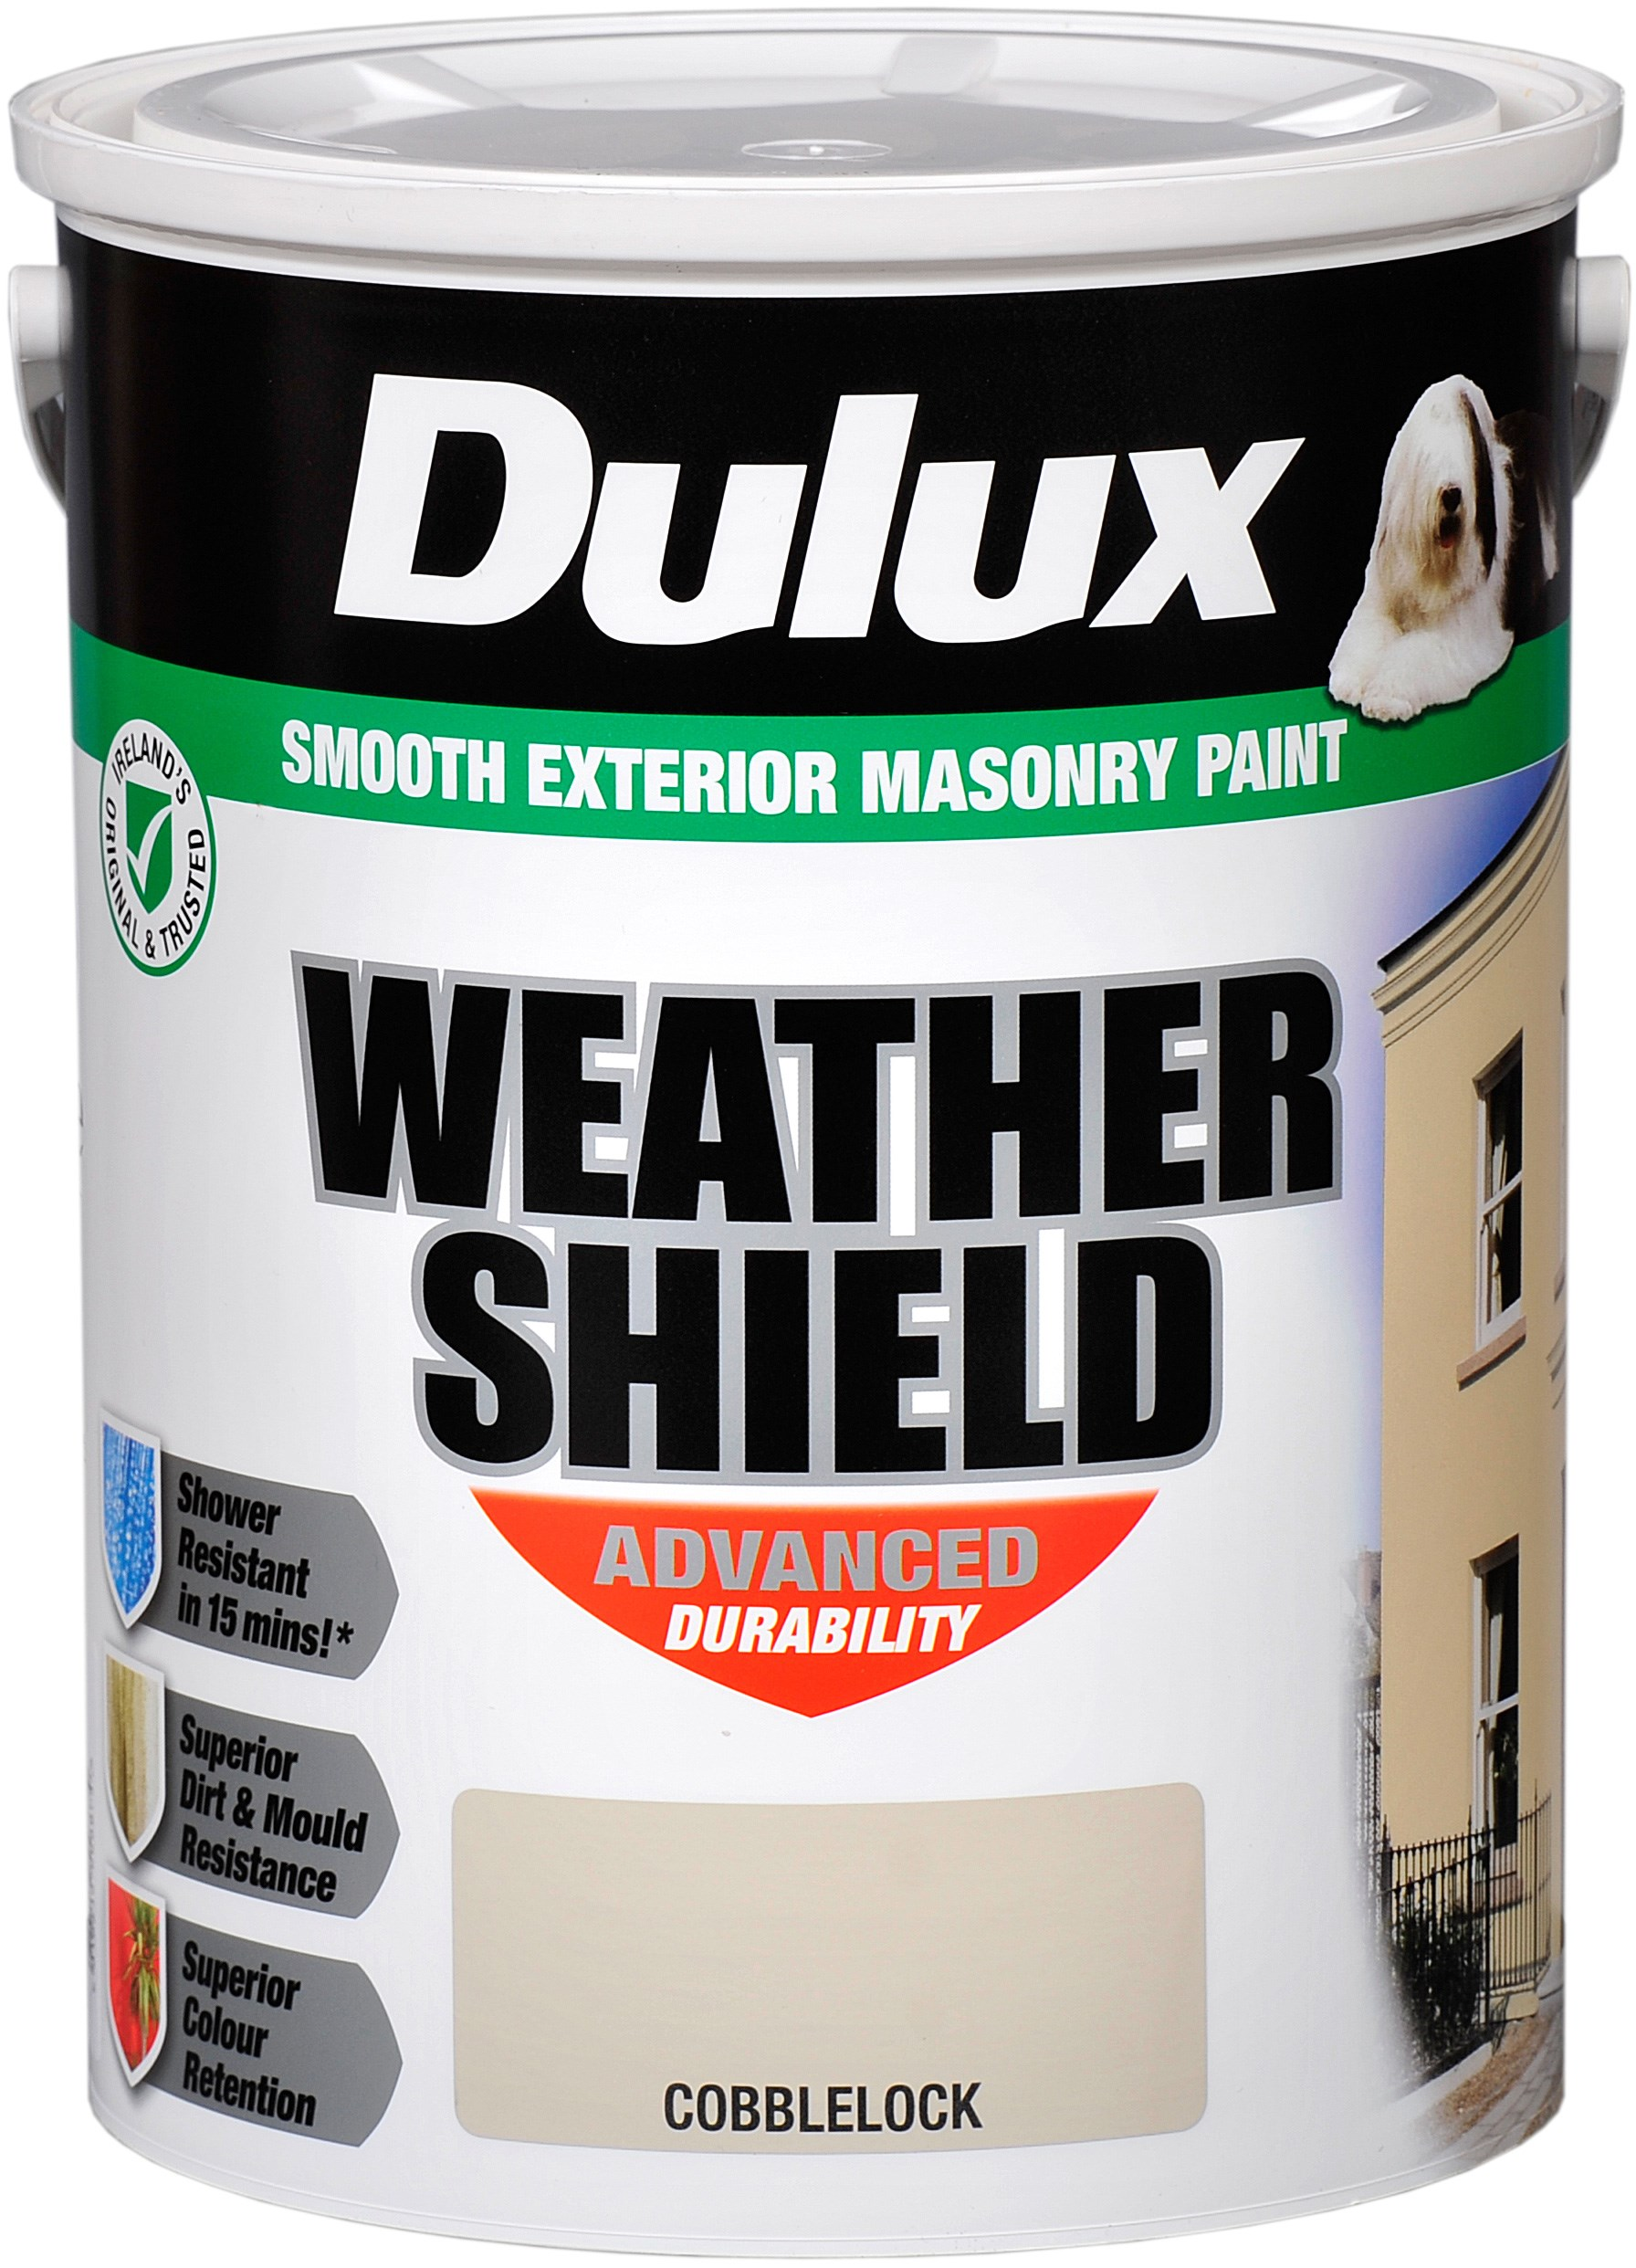 Dulux masonry colours paint 5 litre colour masonry - Dulux weathershield exterior paint minimalist ...